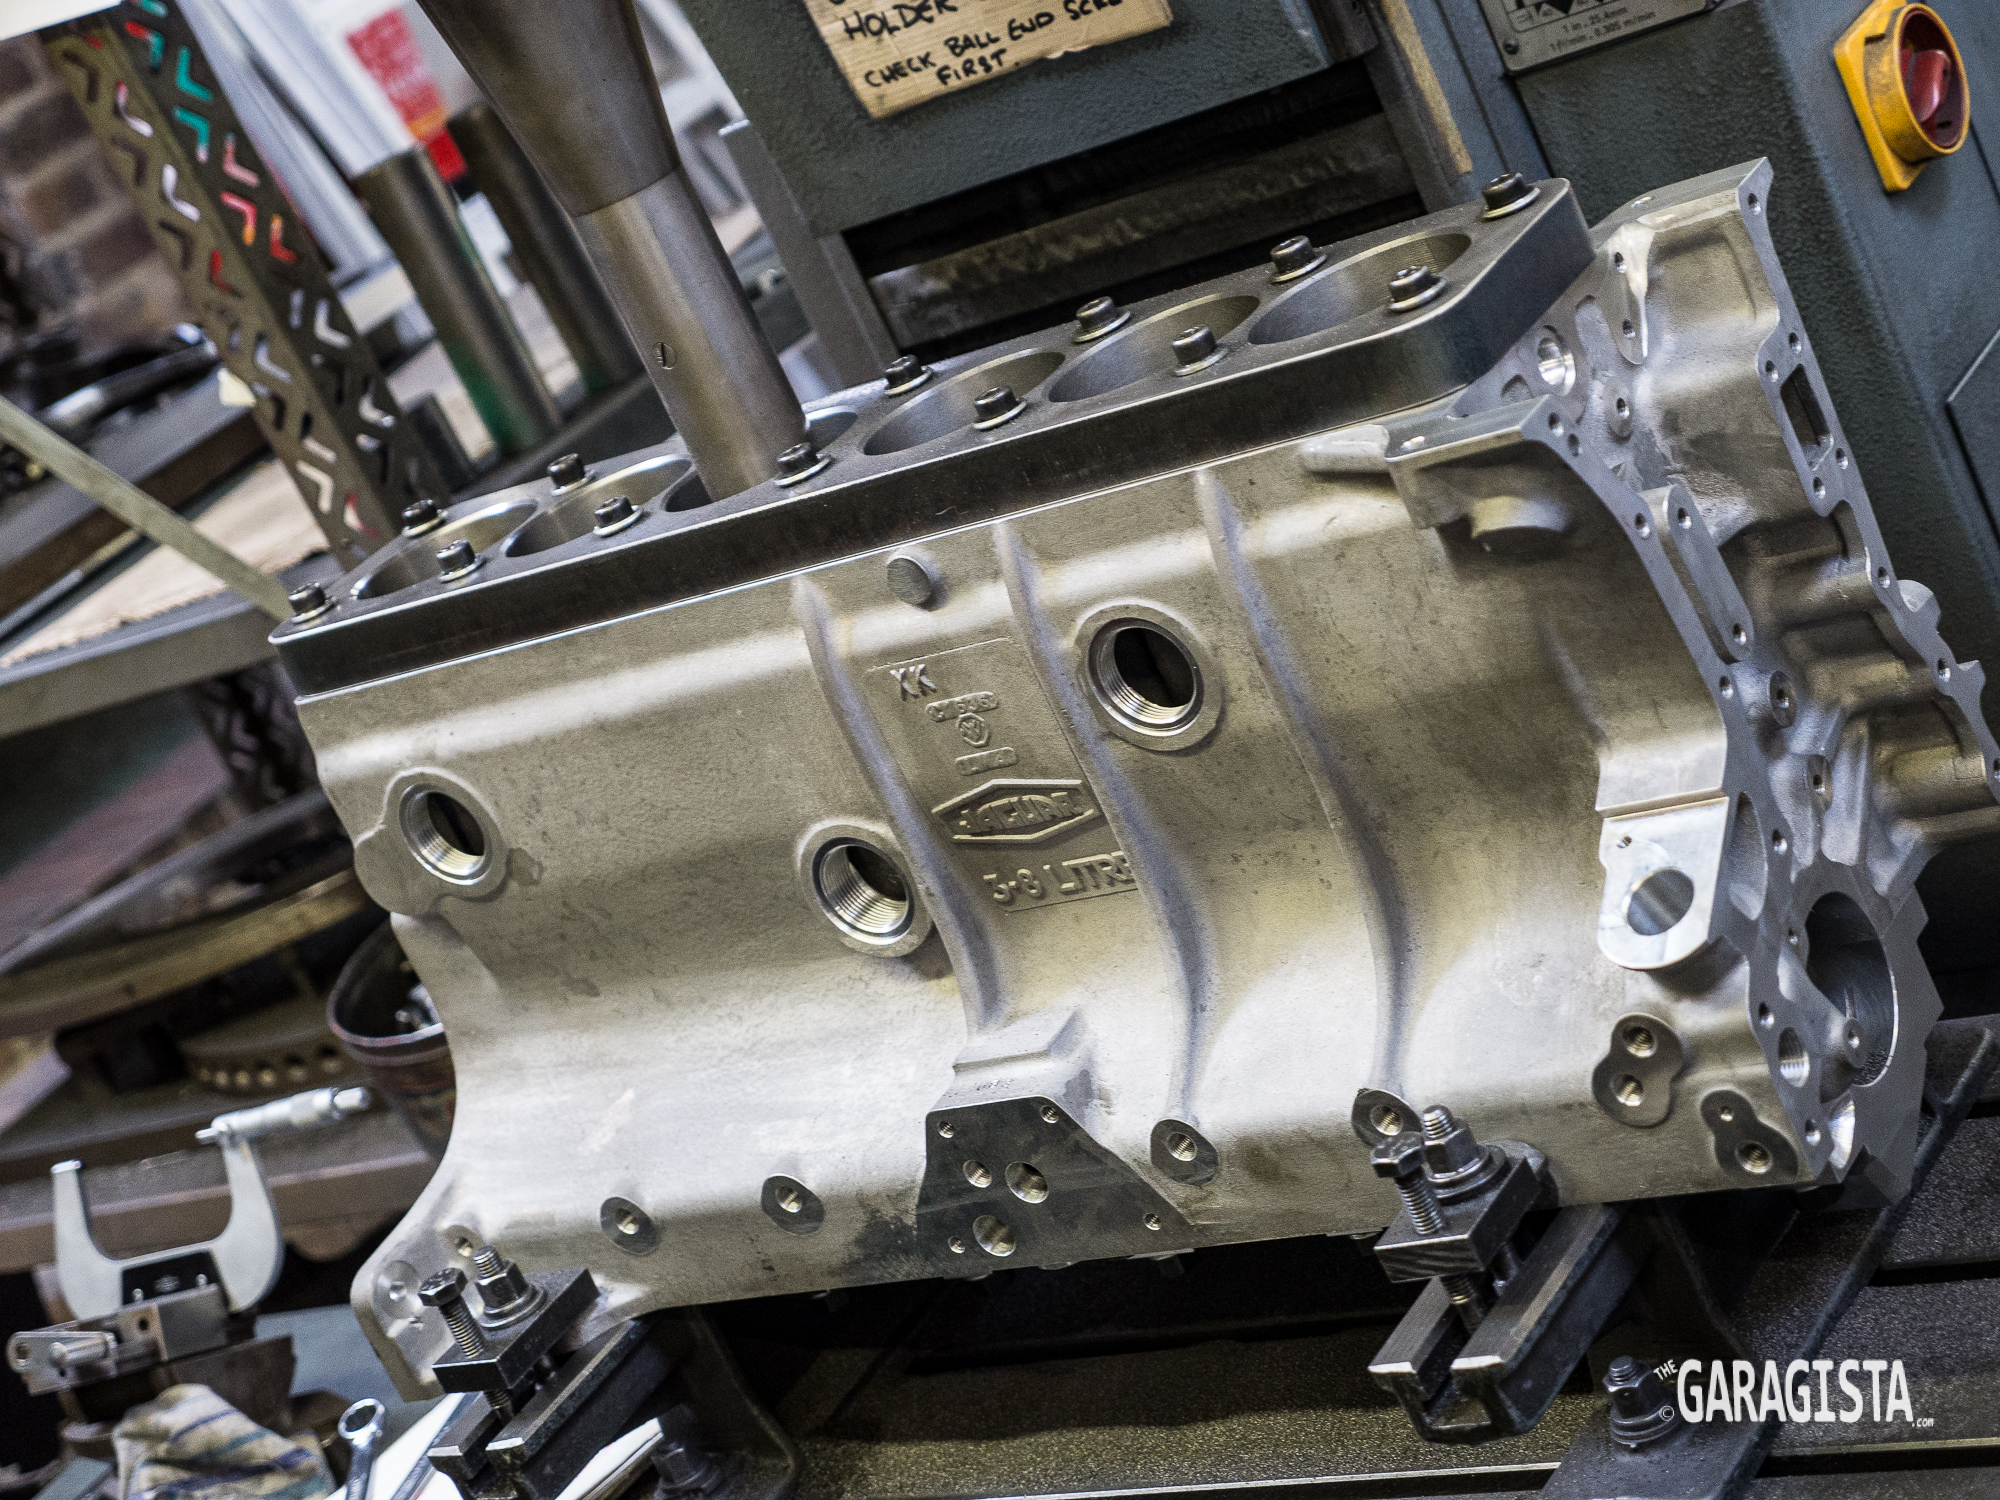 and jaguar xf cylinder turbo supercharged u carscoops confirms for engines s